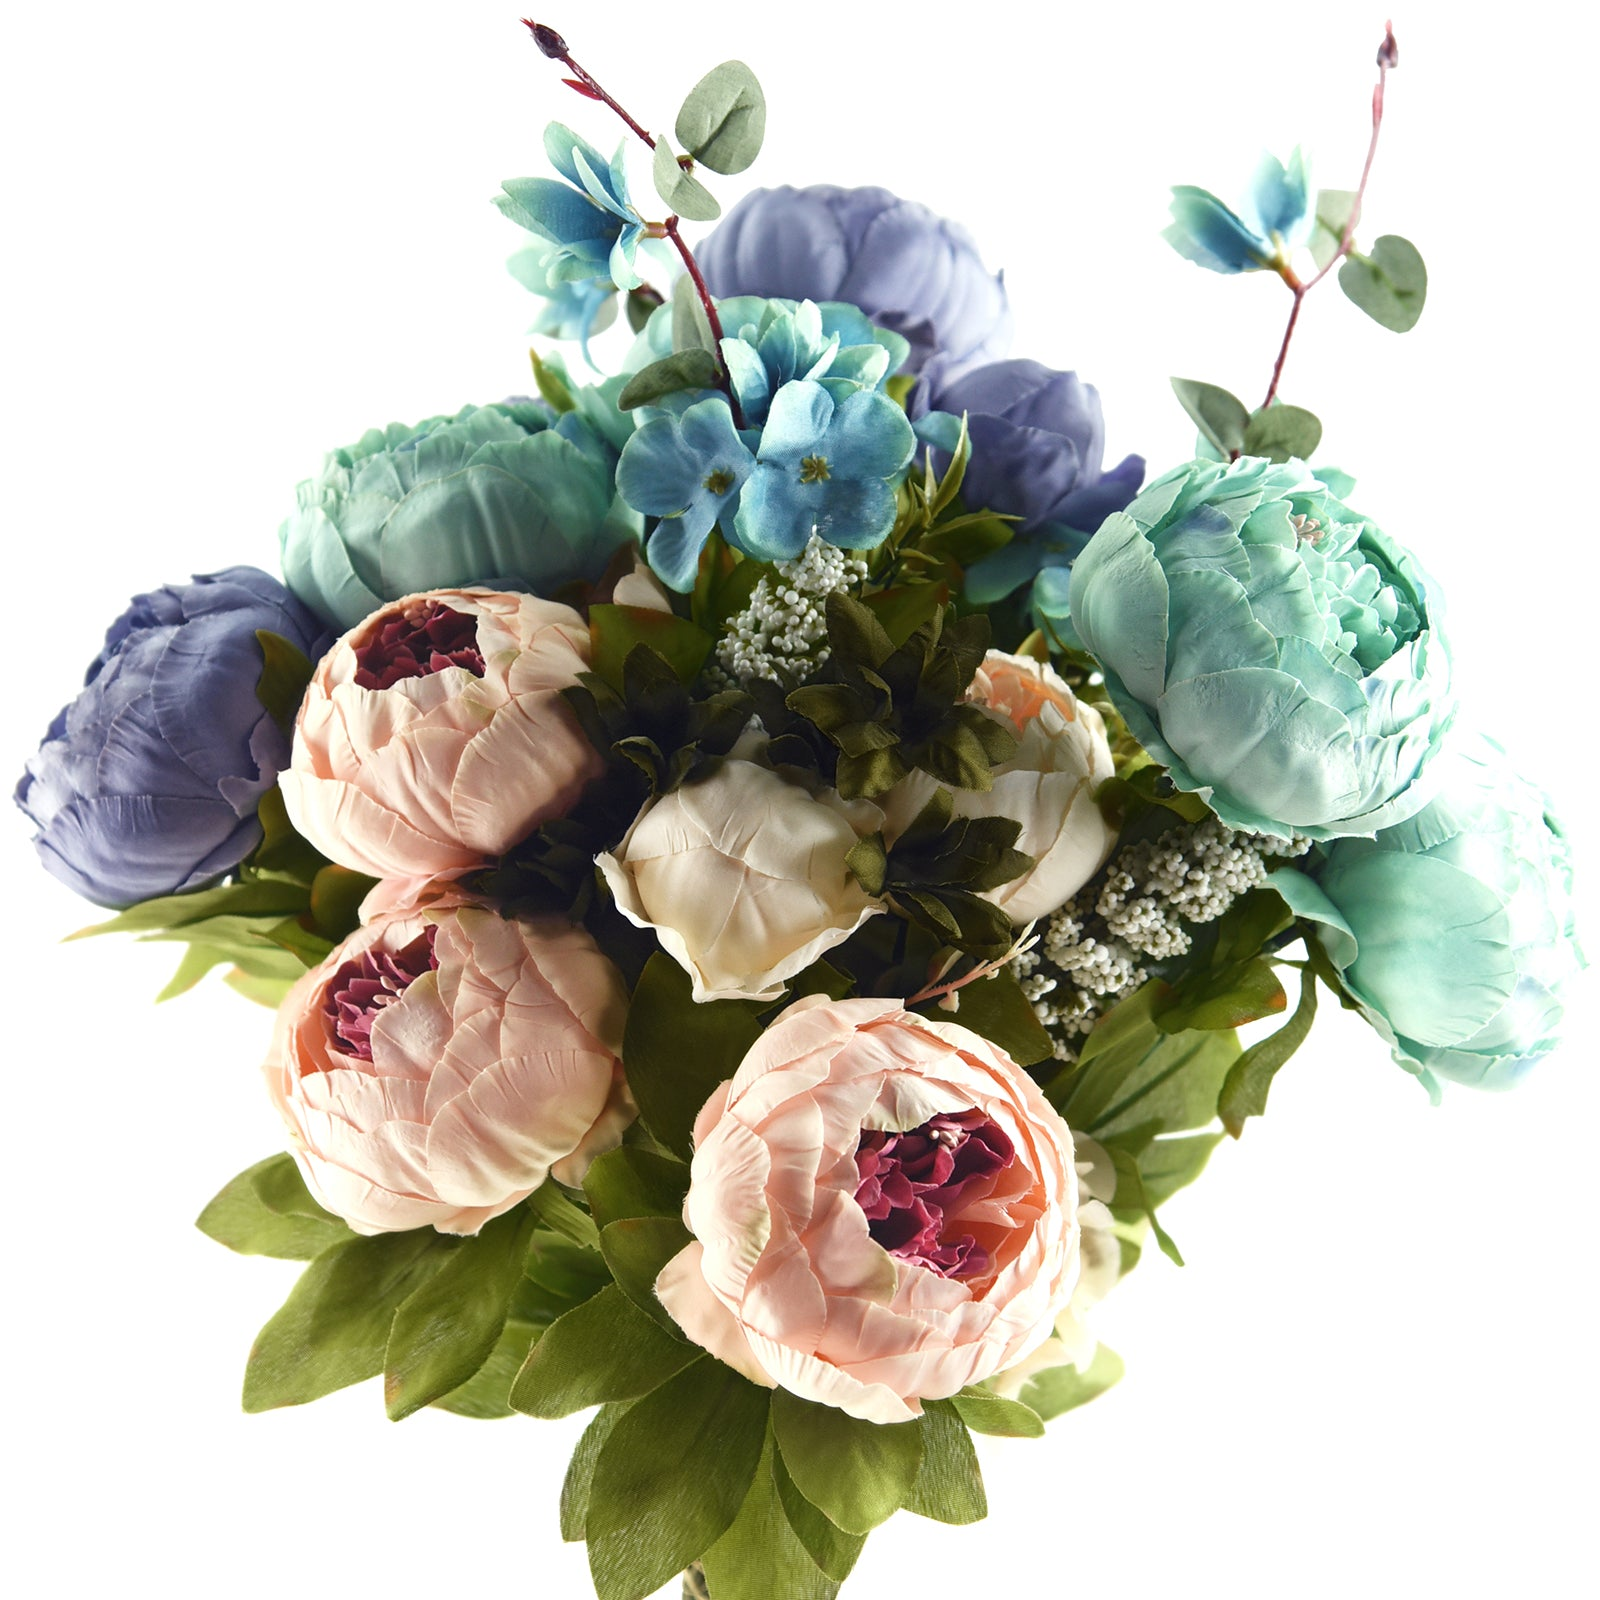 FiveSeasonStuff 2 Bundles Blue|Pink Peonies Artificial Flower Bouquet